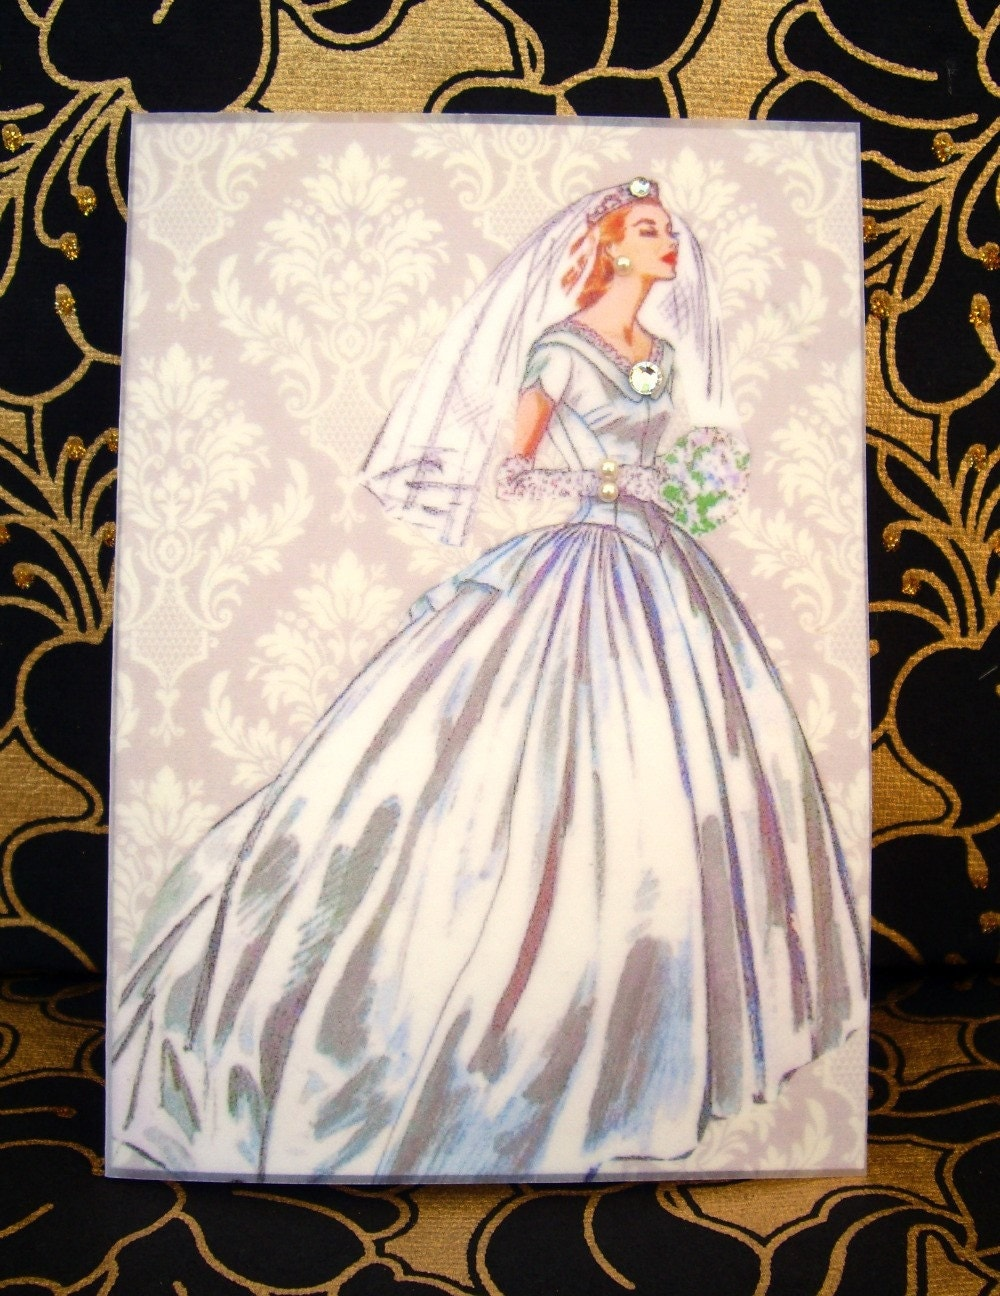 Kathryn Wedding Card / Vintage Printed Collection / 50s Glamour Girl / Handmade Greeting Card